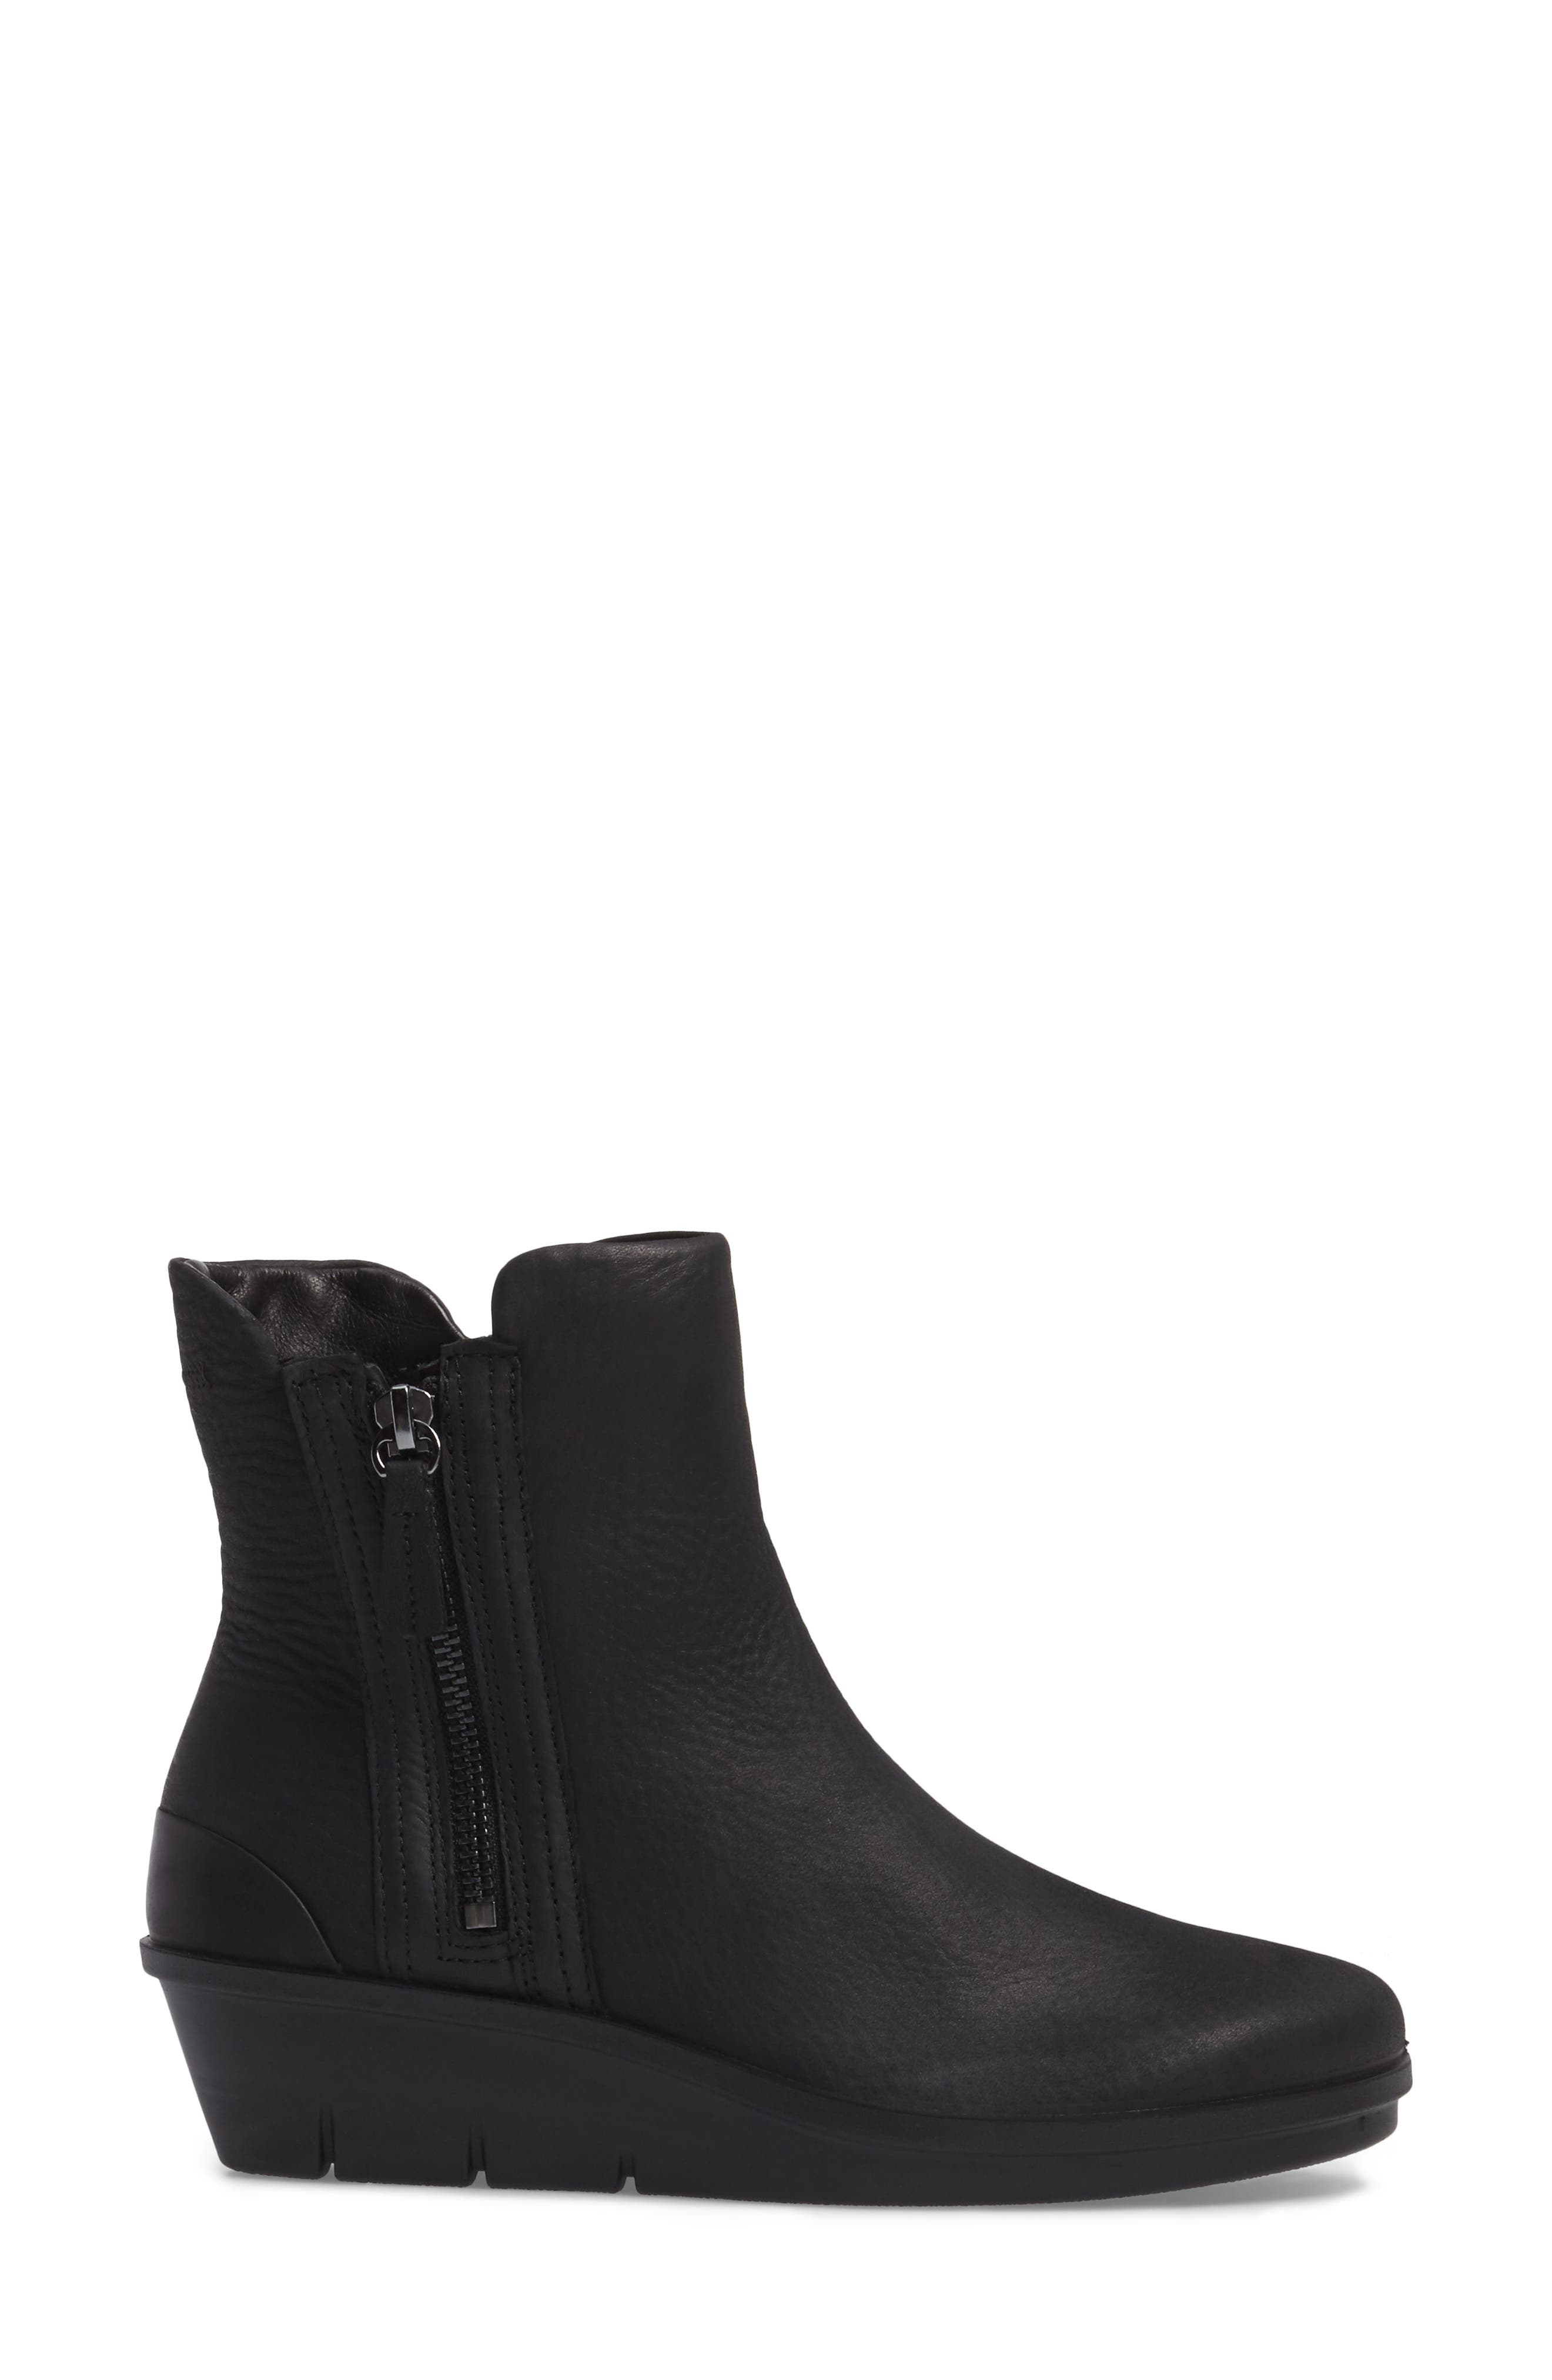 Skyler Notched Wedge Bootie,                             Alternate thumbnail 3, color,                             001